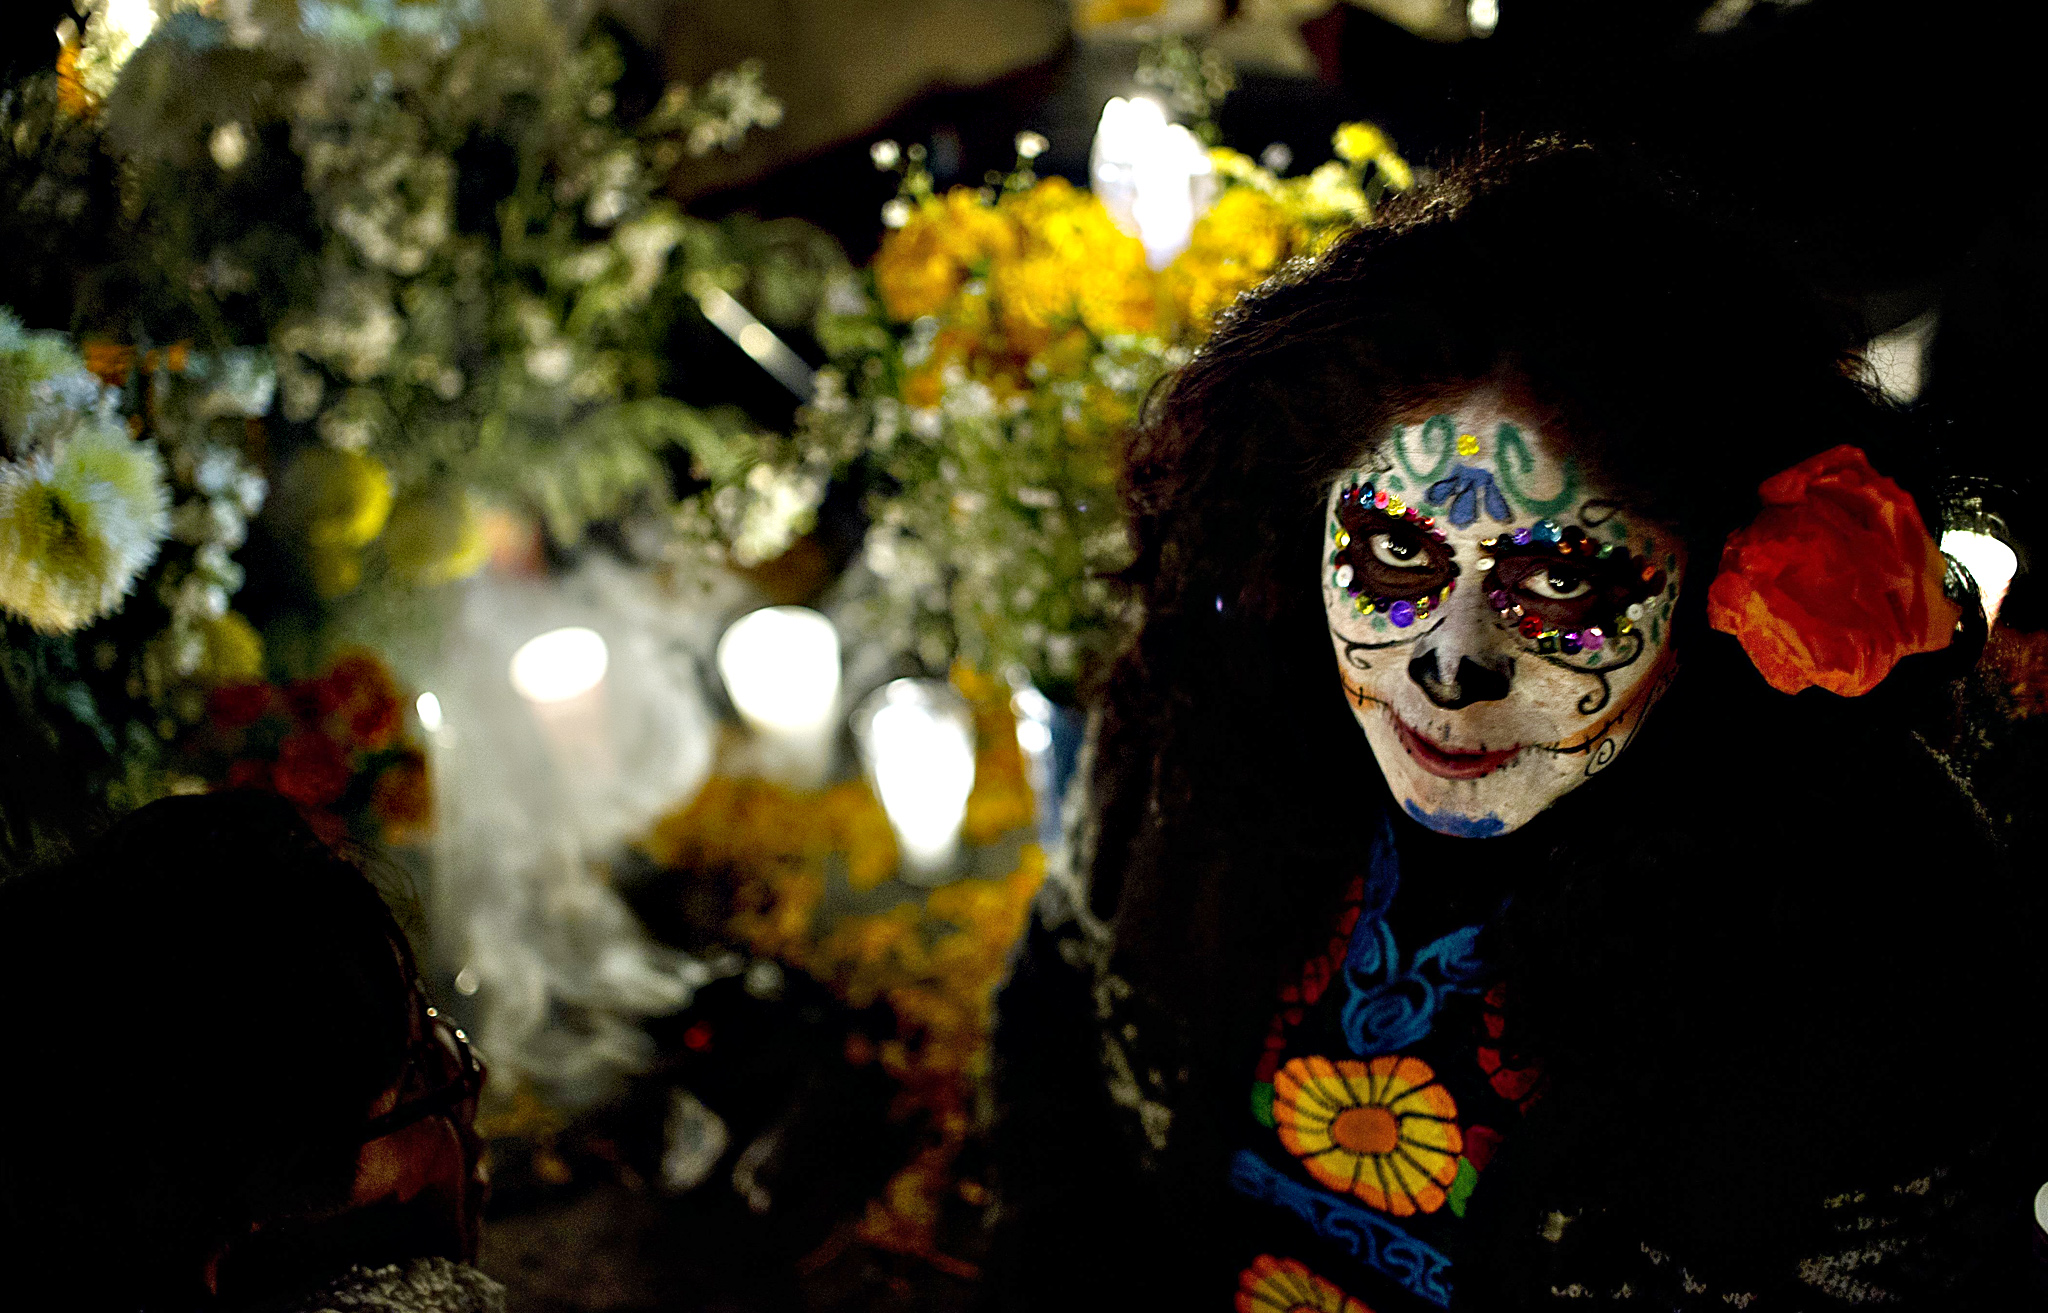 Residents of Mixquic town visit a local cemetery to place flowers, food, candles and balloons at the tombs of their beloved during the celebration of All Souls Day in Mixquic, Mexico